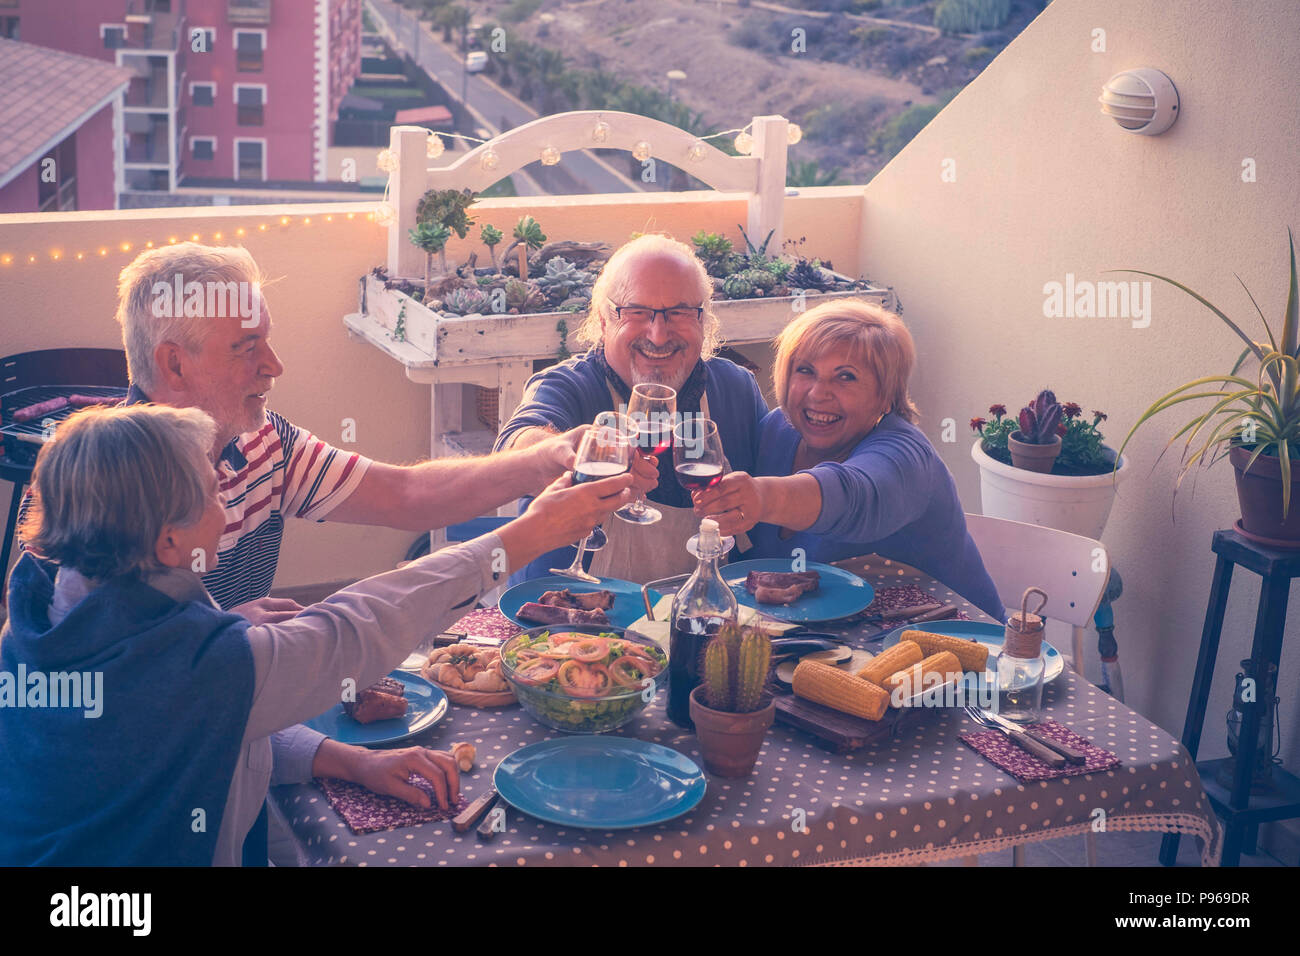 group of caucasian adult mature people eating and drinking together celebrating event by night on the rooftop with city and nature view. summer time a - Stock Image